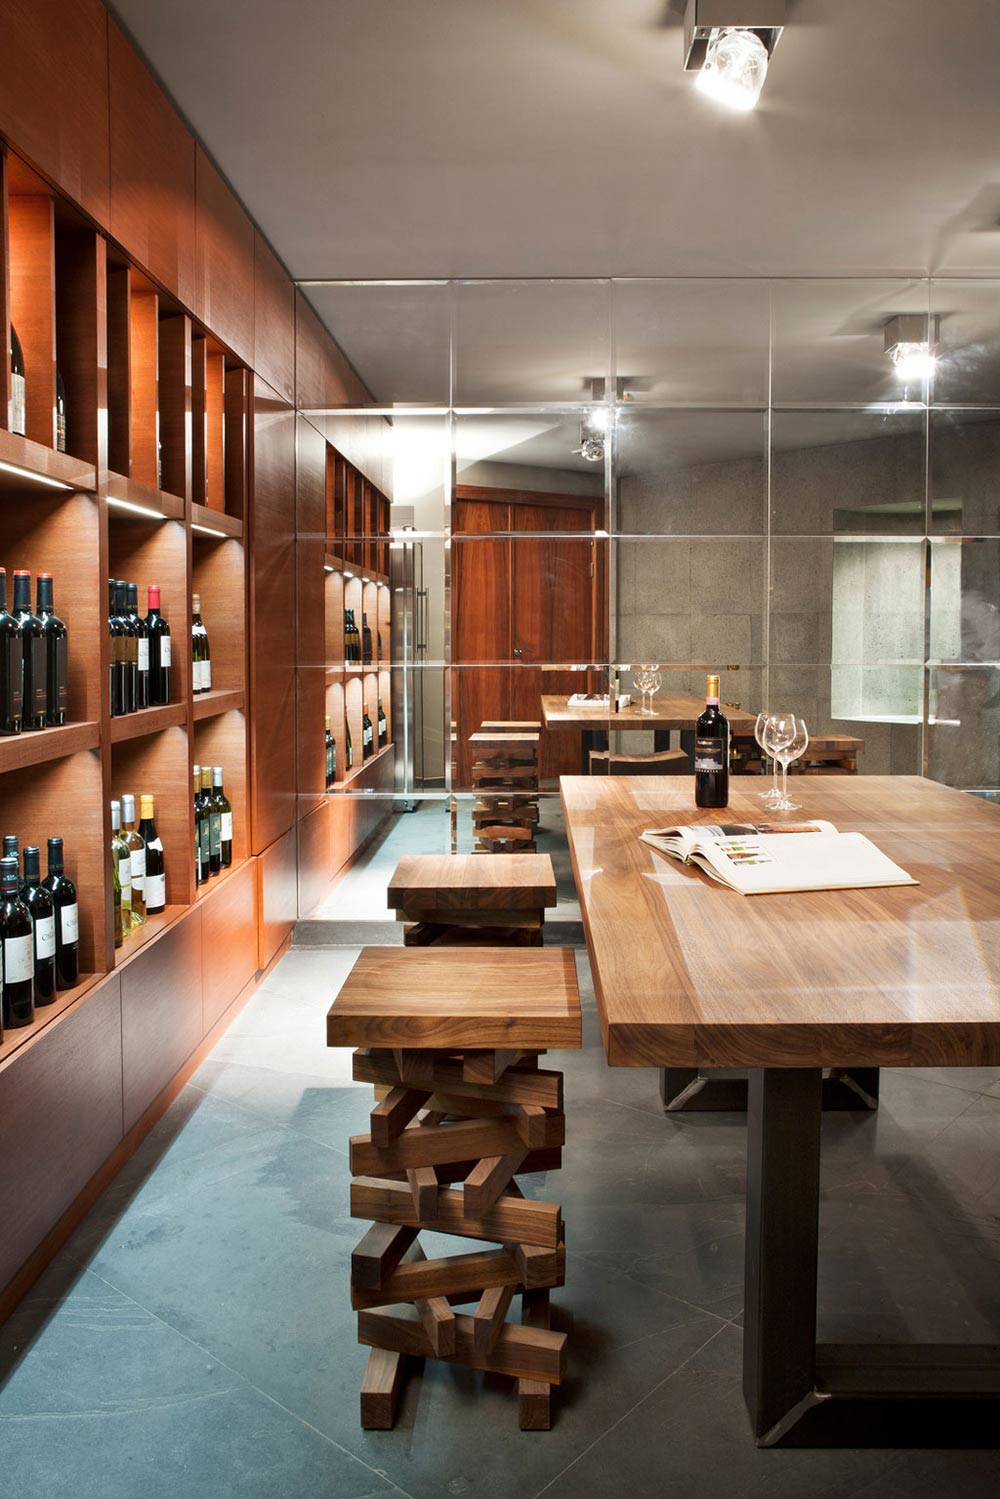 Wine Room, Mirrored Wall, Sophisticated House Near Moscow by Olga Freiman